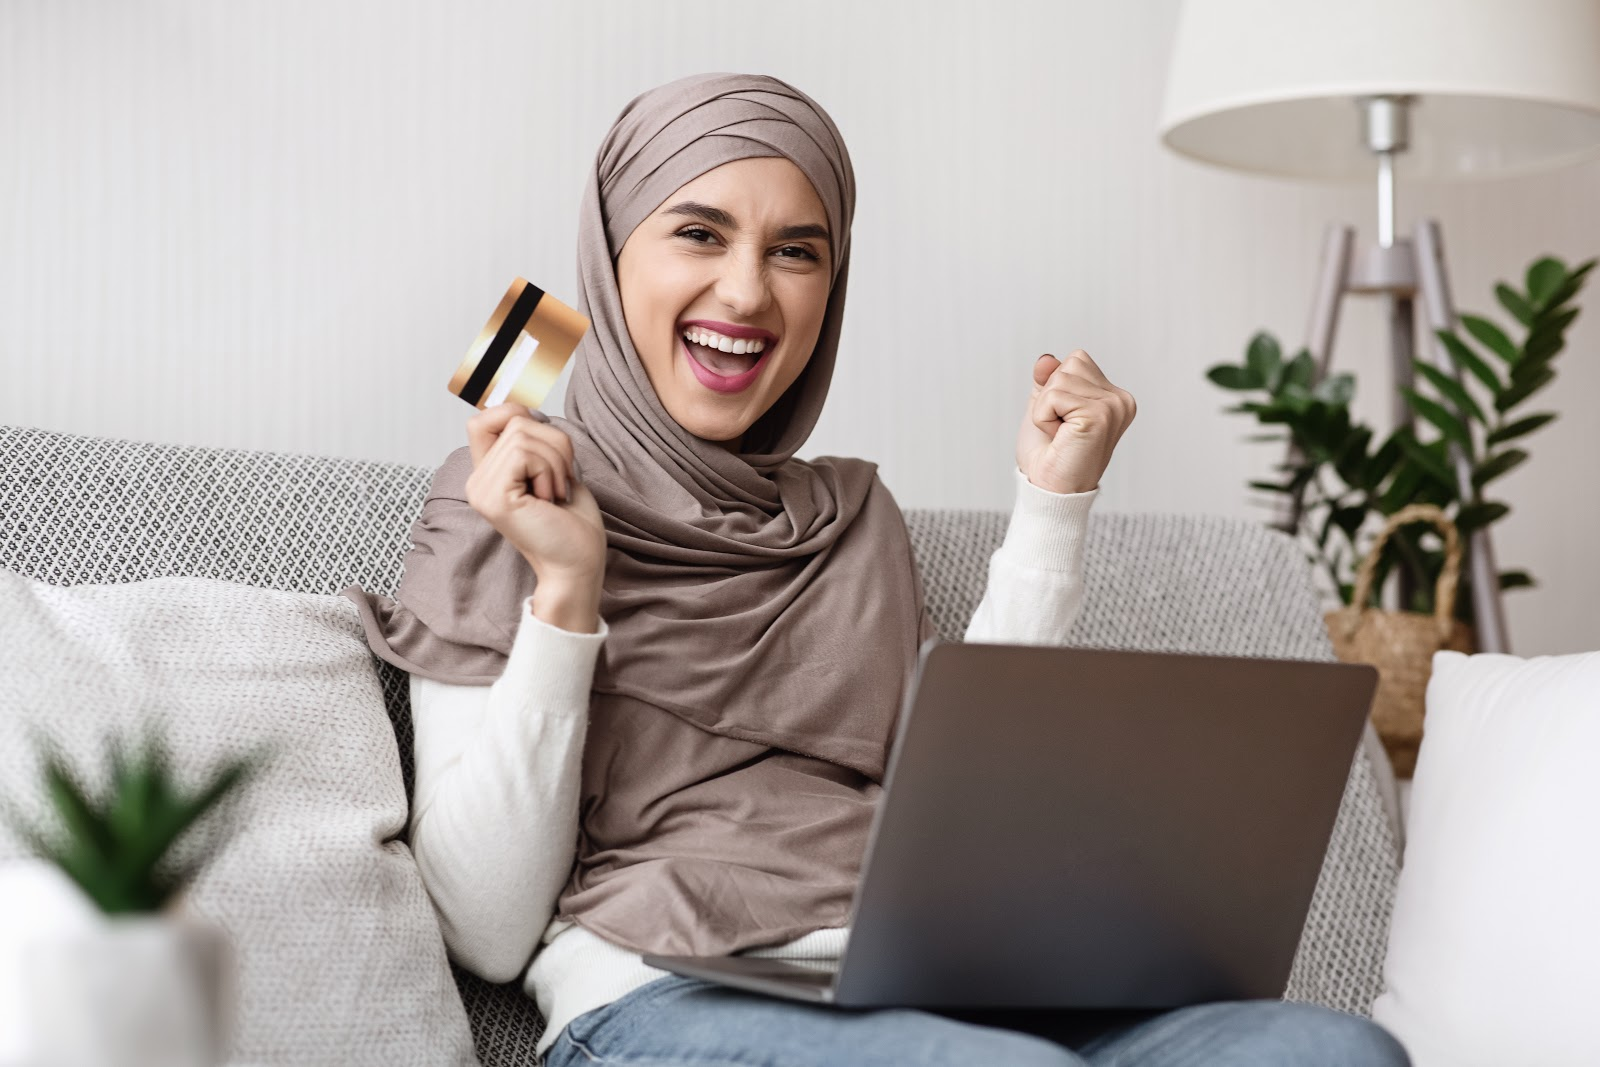 How to improve credit score in 30 days: Happy woman holding credit card